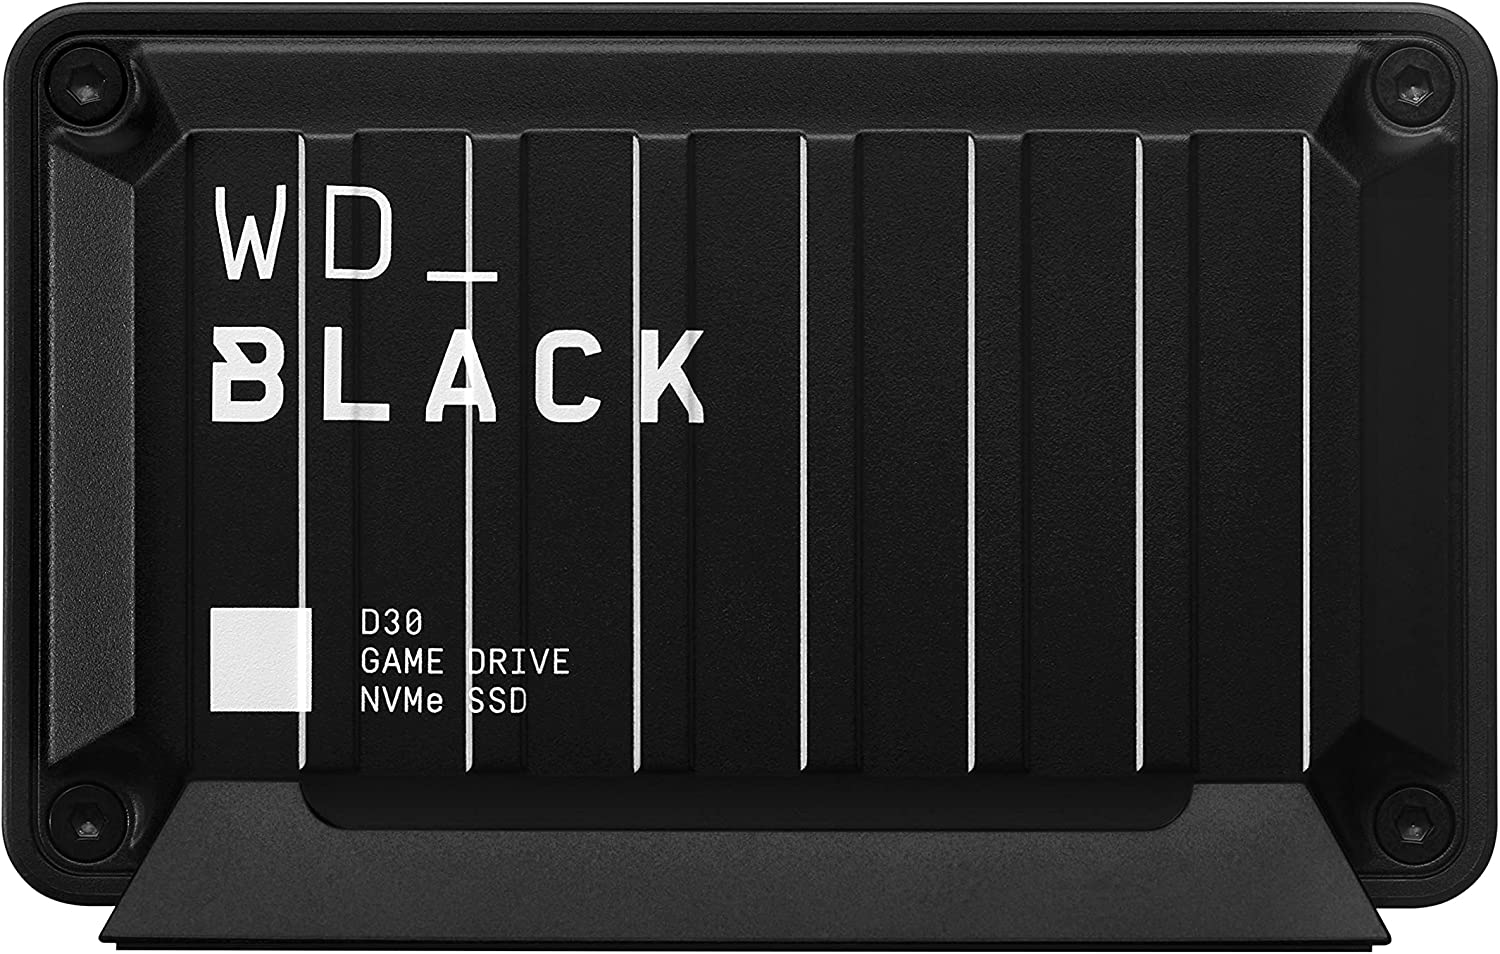 WD_BLACK 2TB D30 Game Drive SSD - Portable External Solid State Drive, Compatible with Playstation, Xbox, & PC, Up to 900MB/s - WDBATL0020BBK-WESN